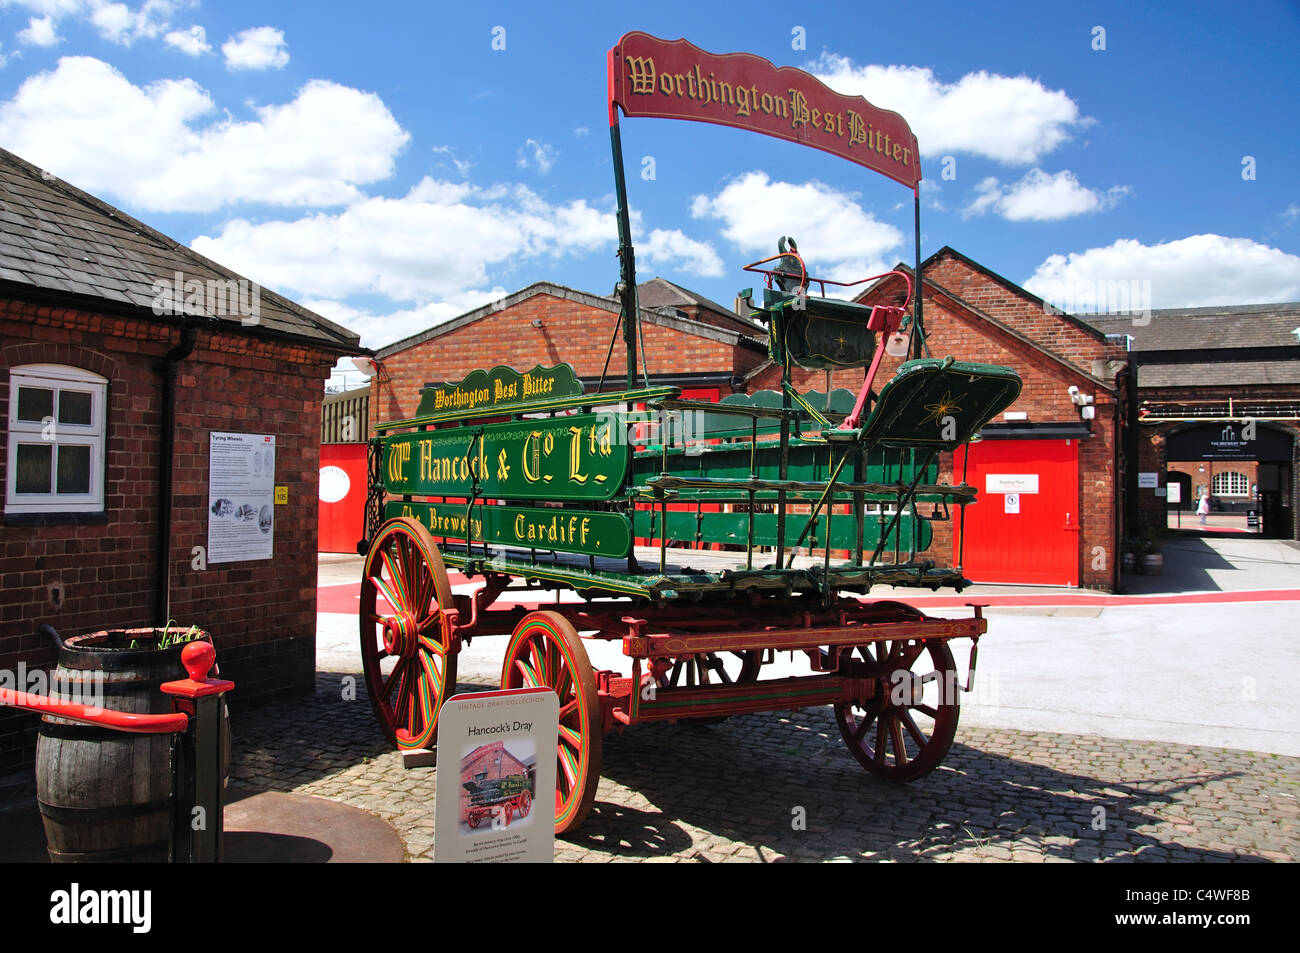 Vintage beer wagon, The National Brewery Centre, Horninglow Street, Burton  upon Trent, Staffordshire, England, United Kingdom